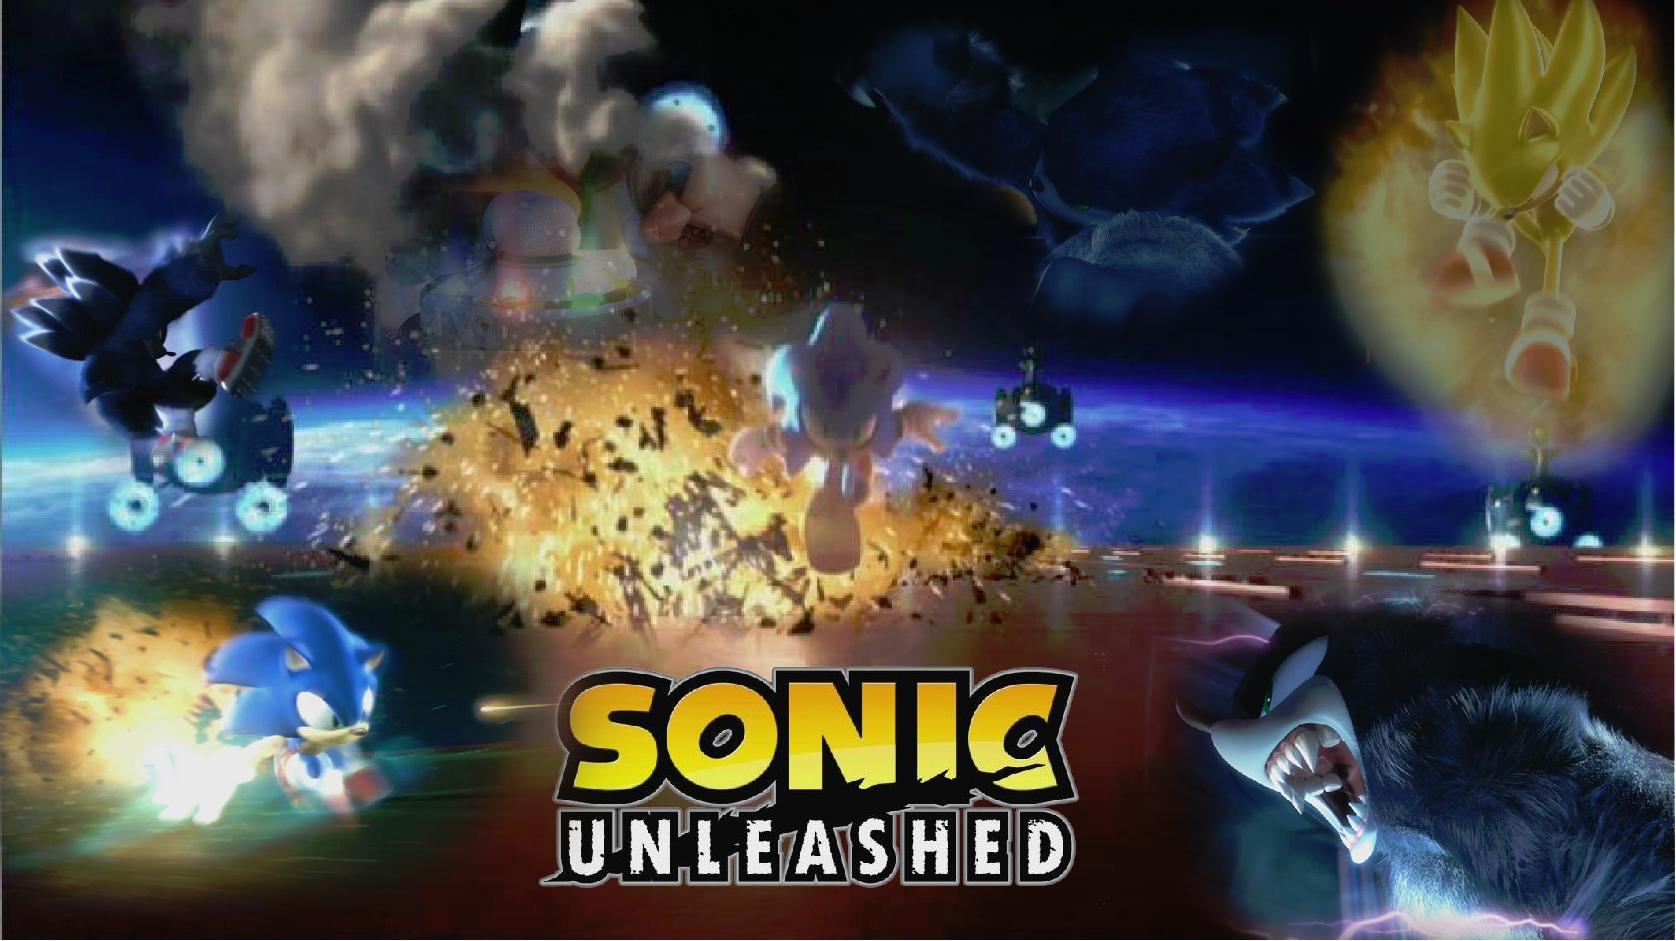 http://fc68.deviantart.com/fs32/f/2008/226/f/a/Sonic_Unleashed_Poster_by_MetalshadowN64.jpg